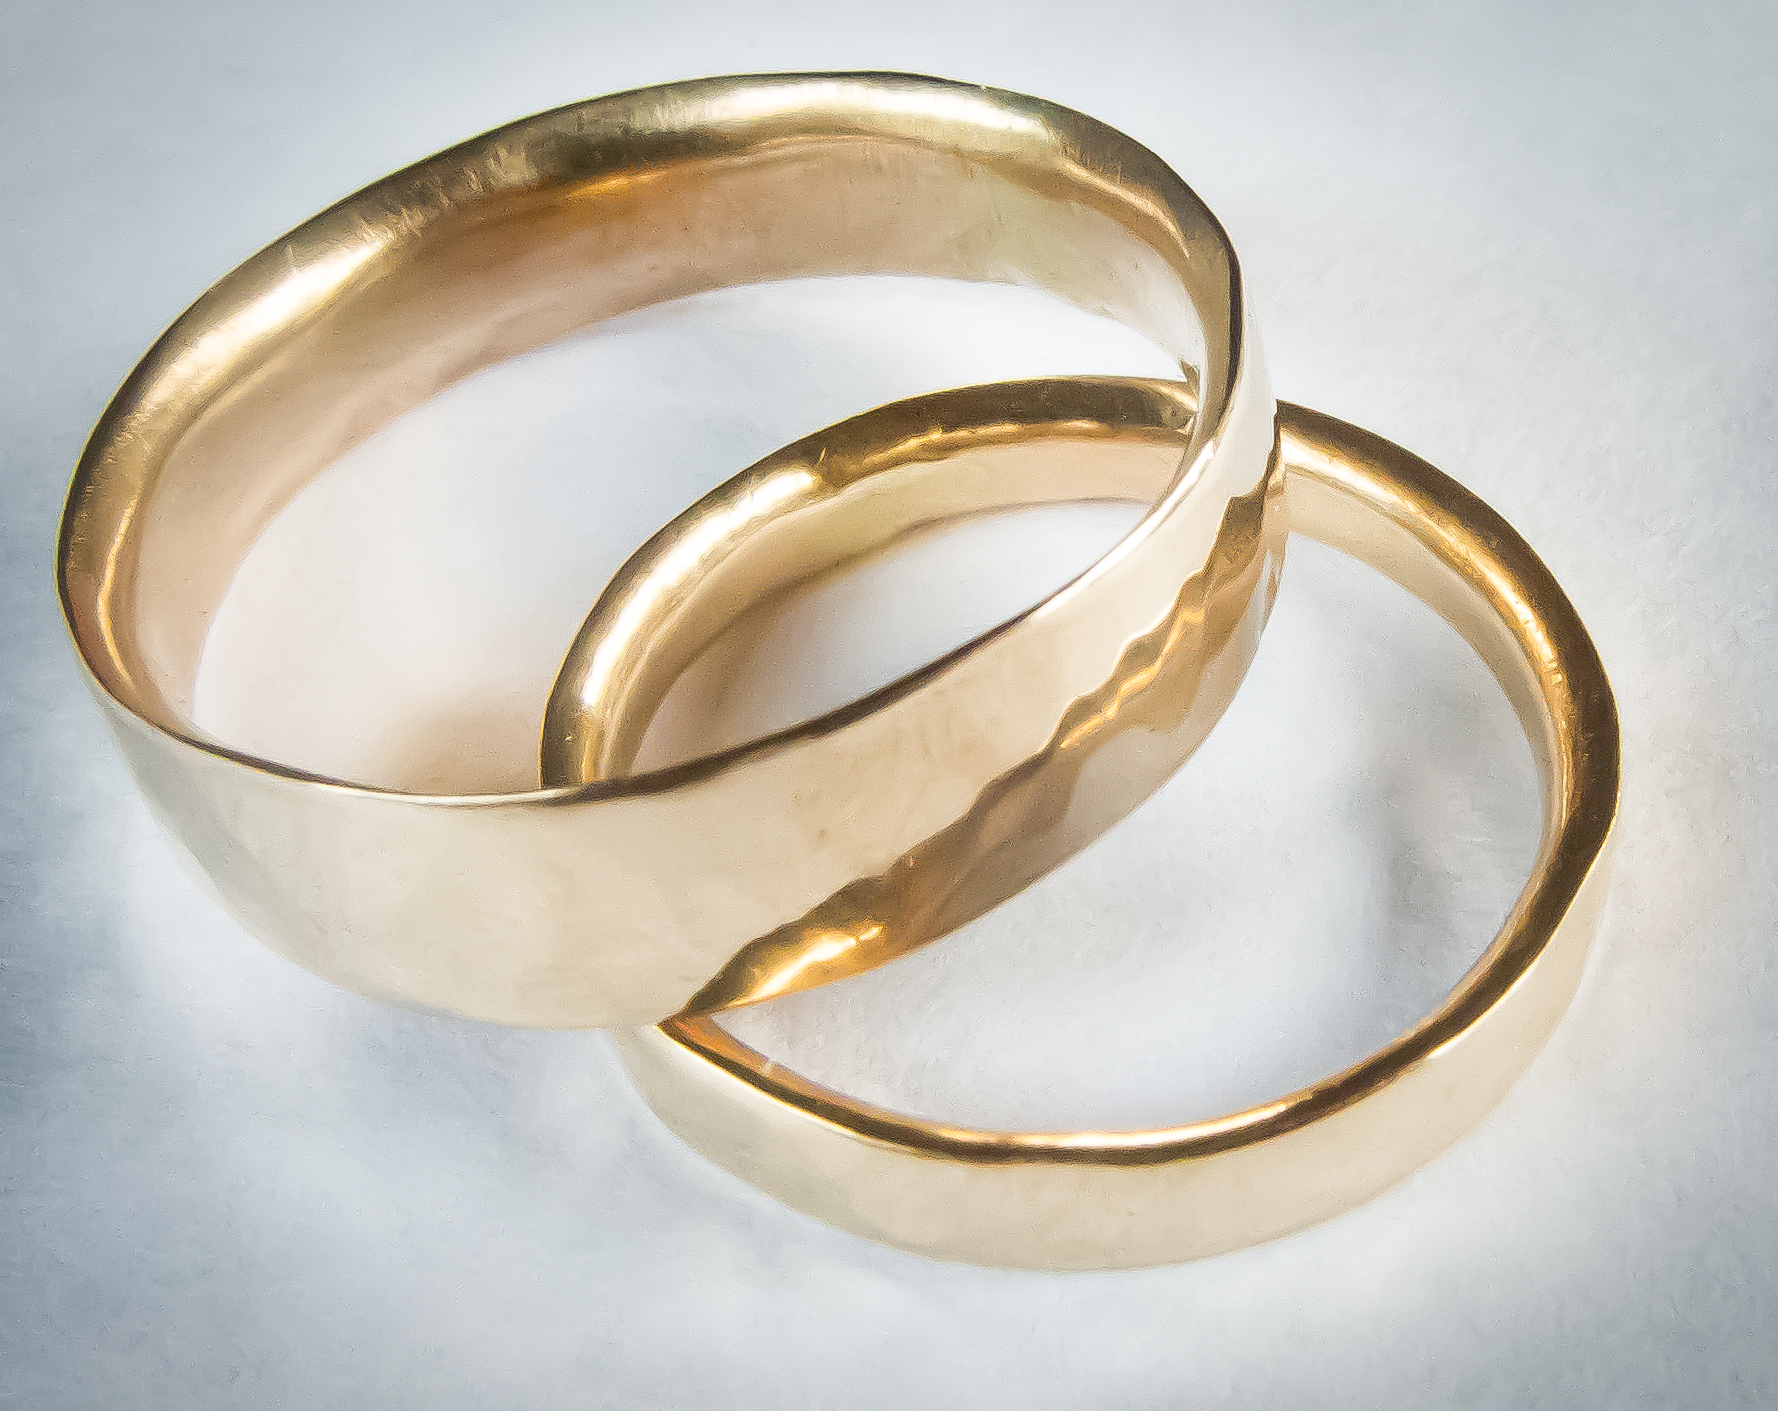 Leon and Violet's hammeredrings, closeup